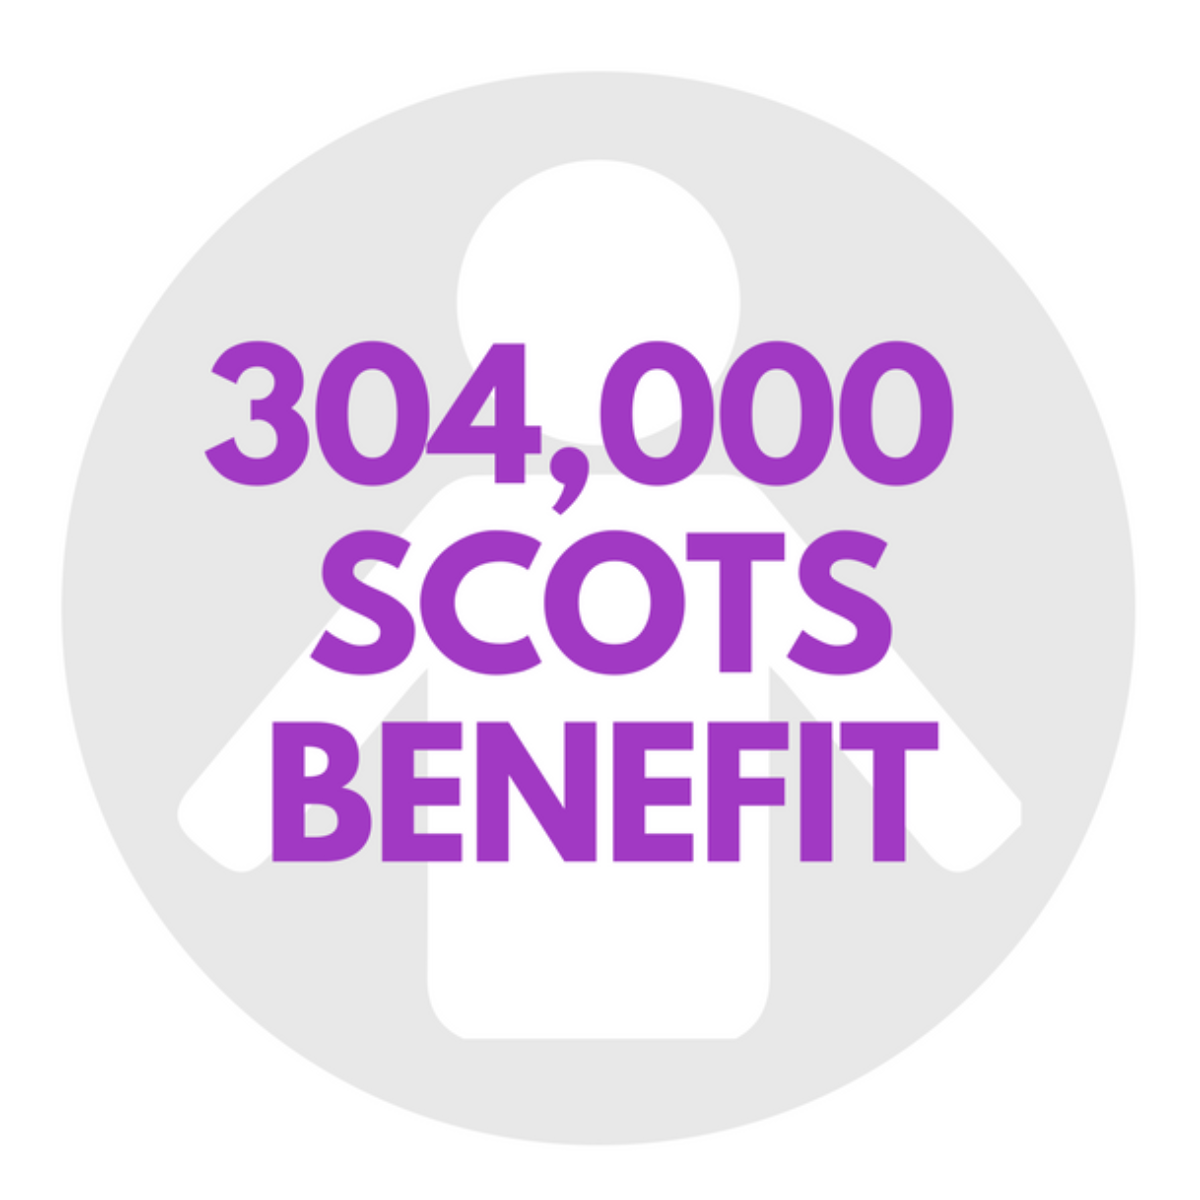 109000 SCOTS 208000 malawians involved 4